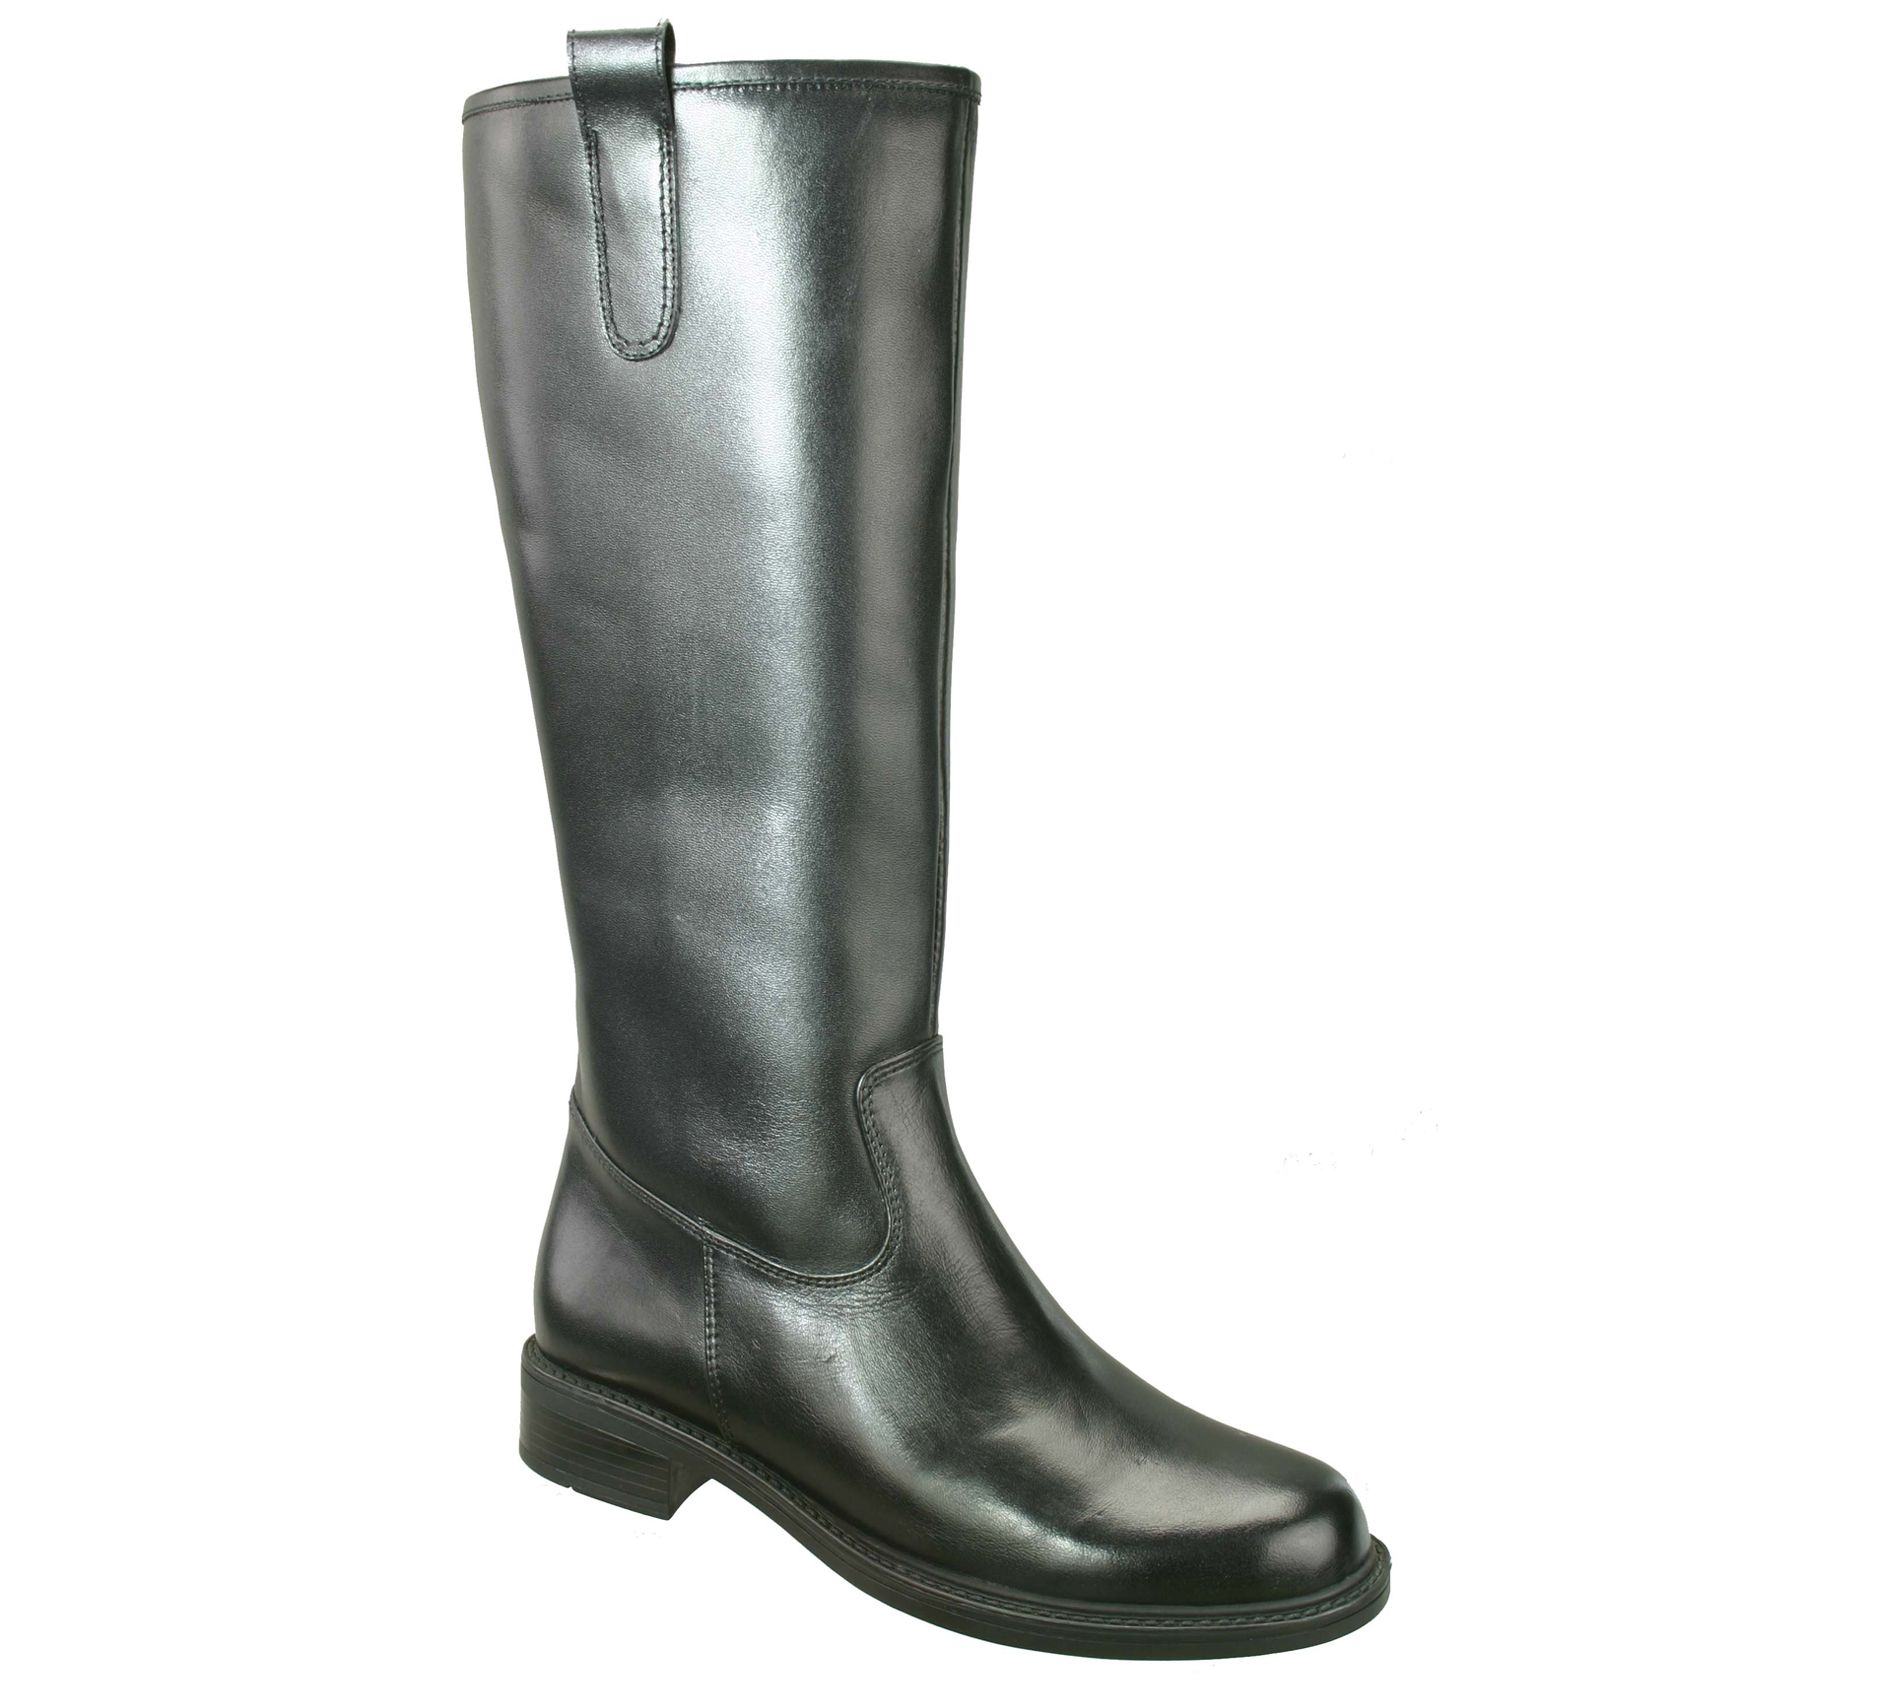 99c25c3d677 David Tate Extra-Wide-Calf Tall Leather Boots -Best 20 - Page 1 — QVC.com